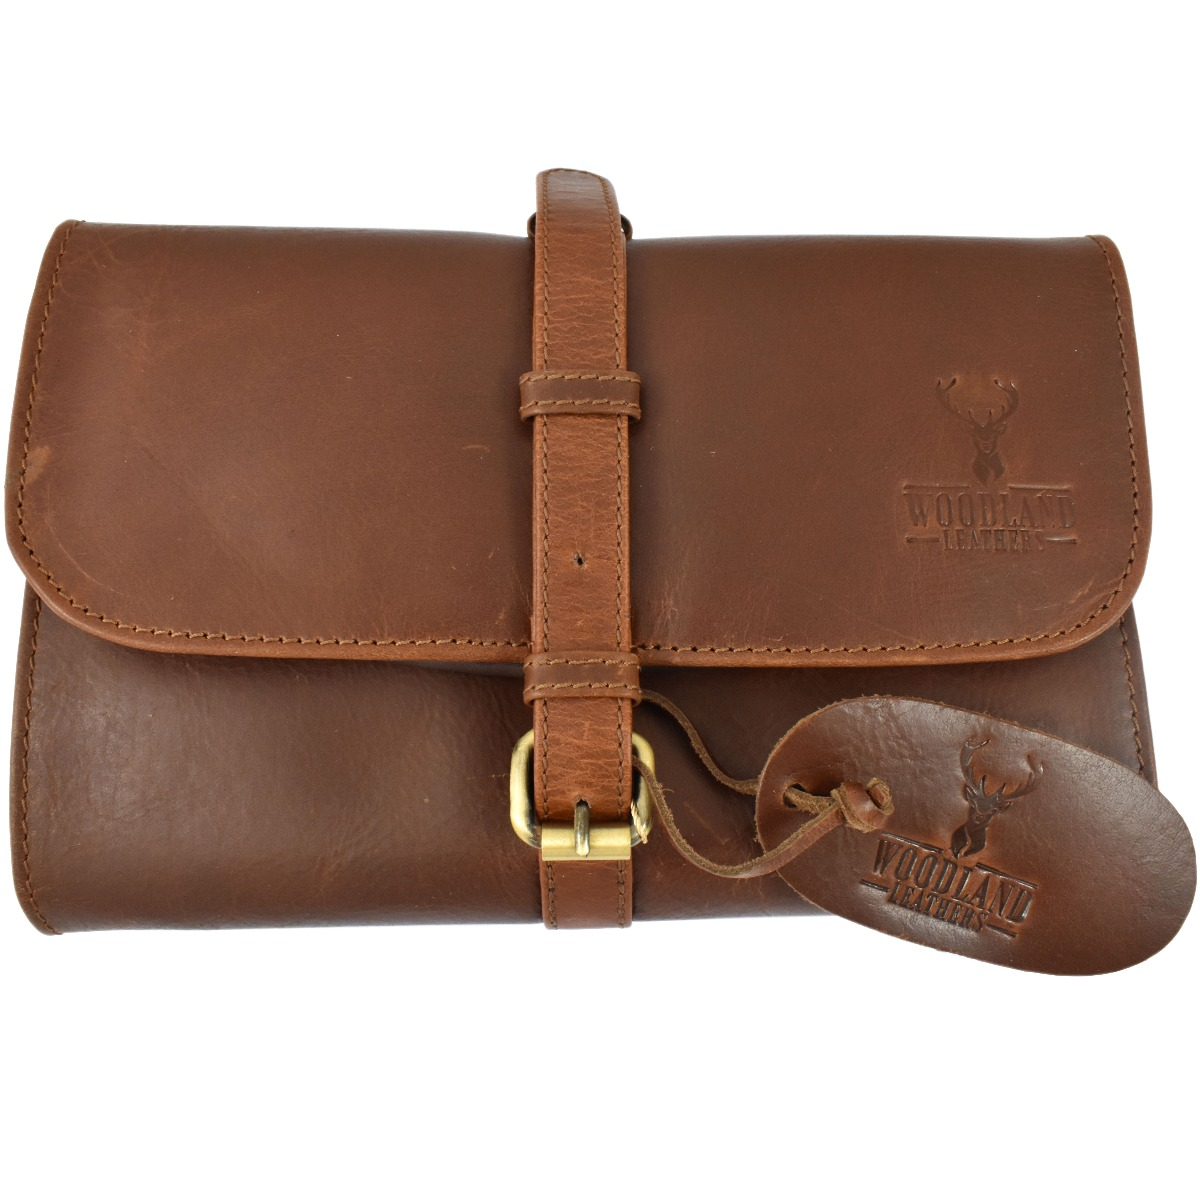 Woodland Leathers Chestnut Leather Military Wet Pack Kit